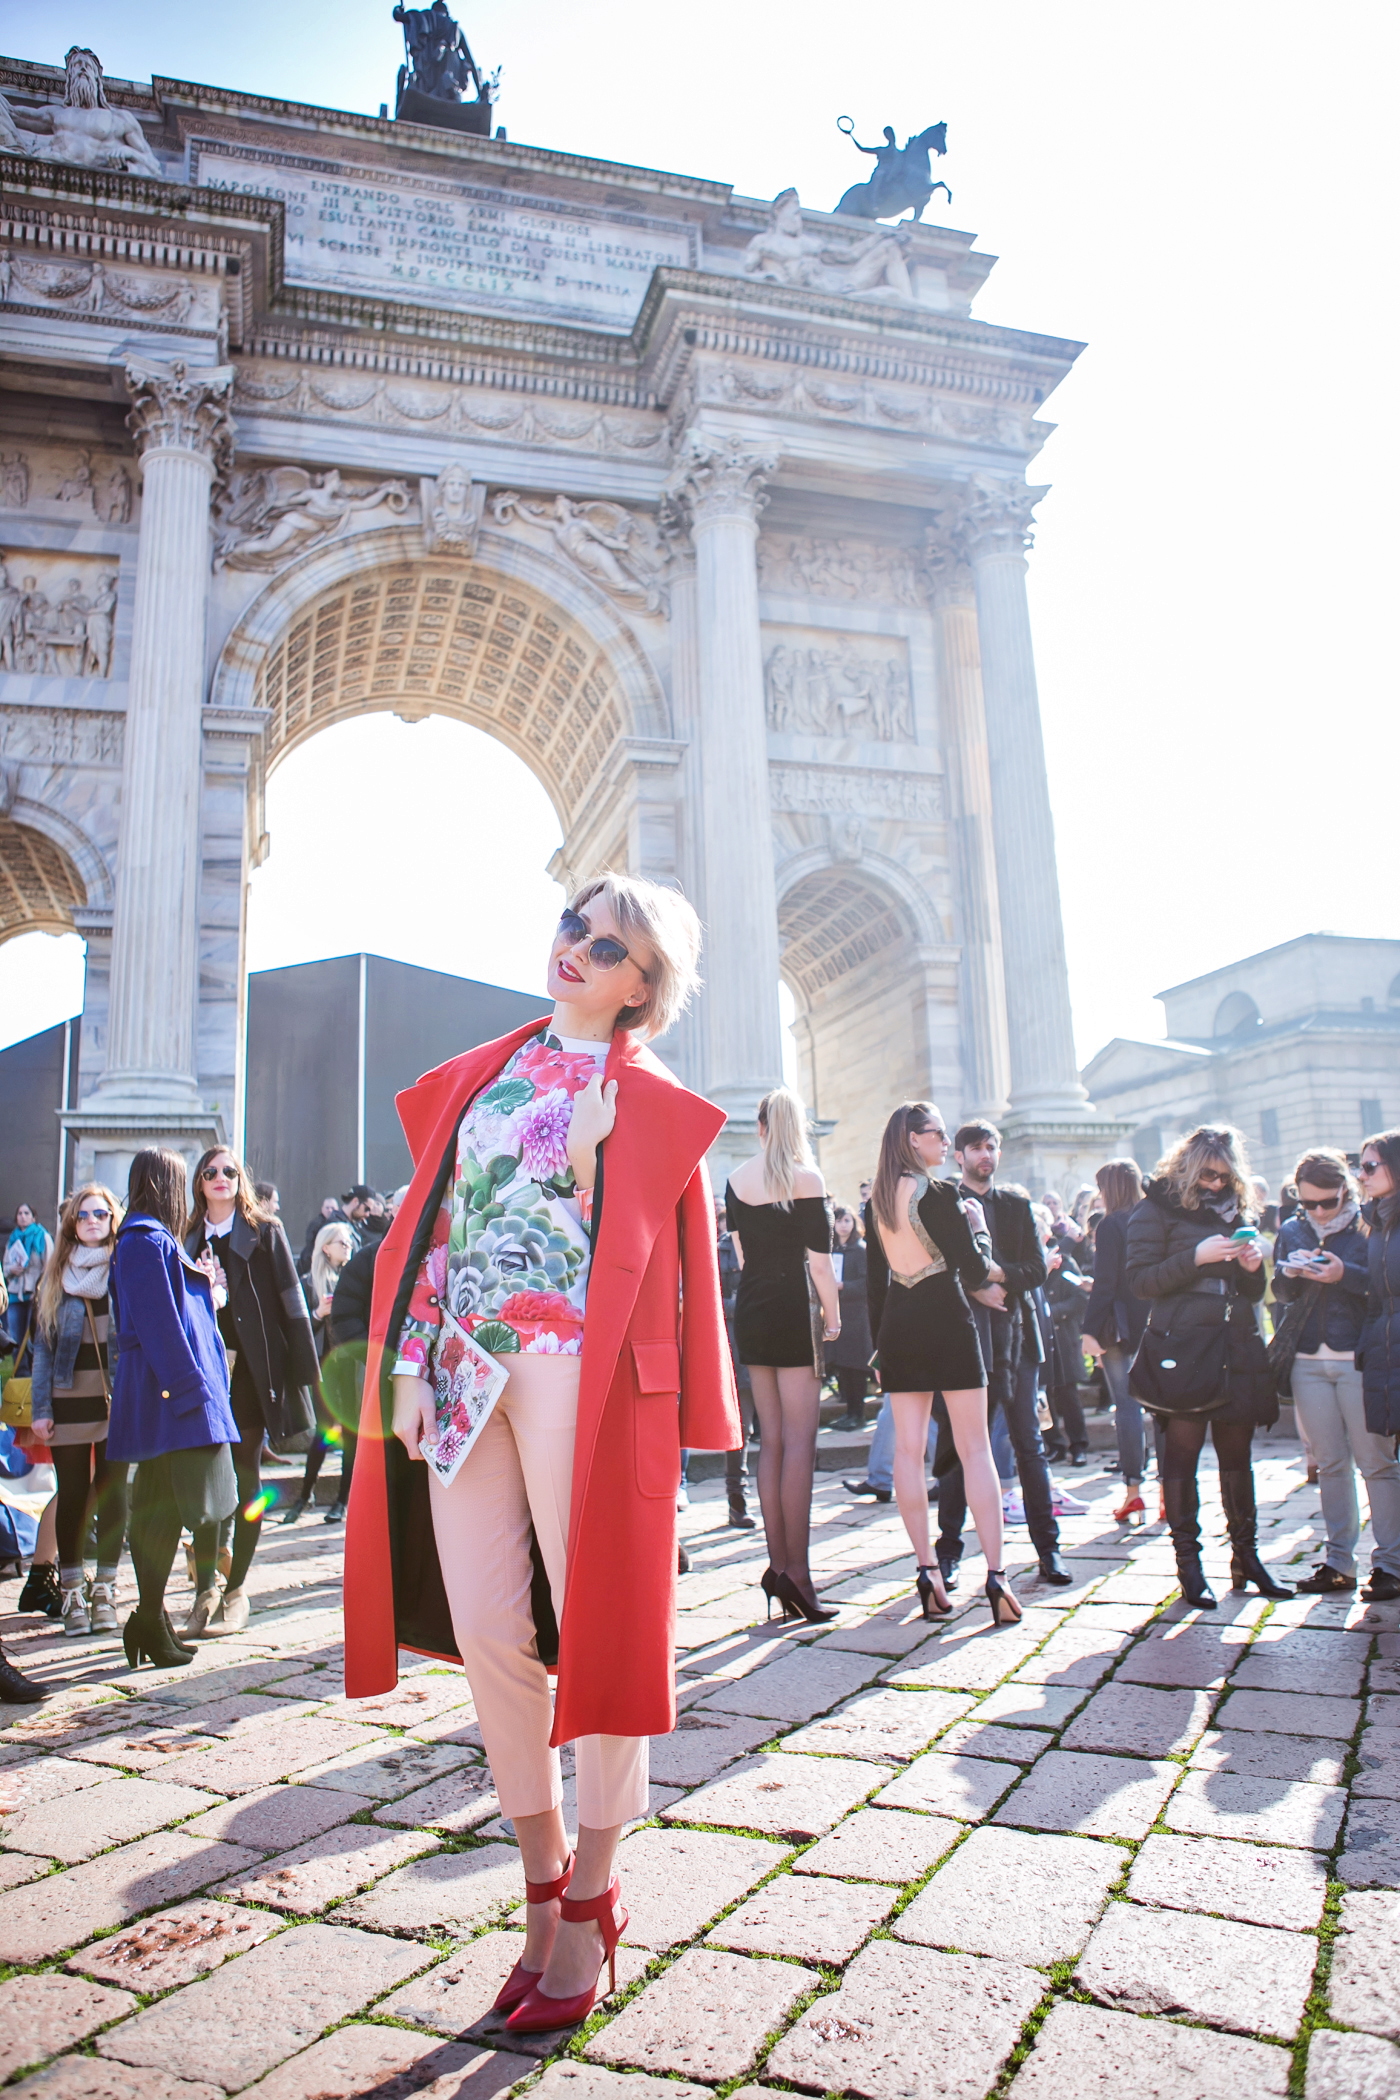 thecablook darya kamalova russian italian fashion blogger blonde short hair pixie cut street style whats inside you by eleonora carisi outfit asos long red coat steven heels shopbop milan fashion week aw14 15 arco della pace just cavalli-24 copy